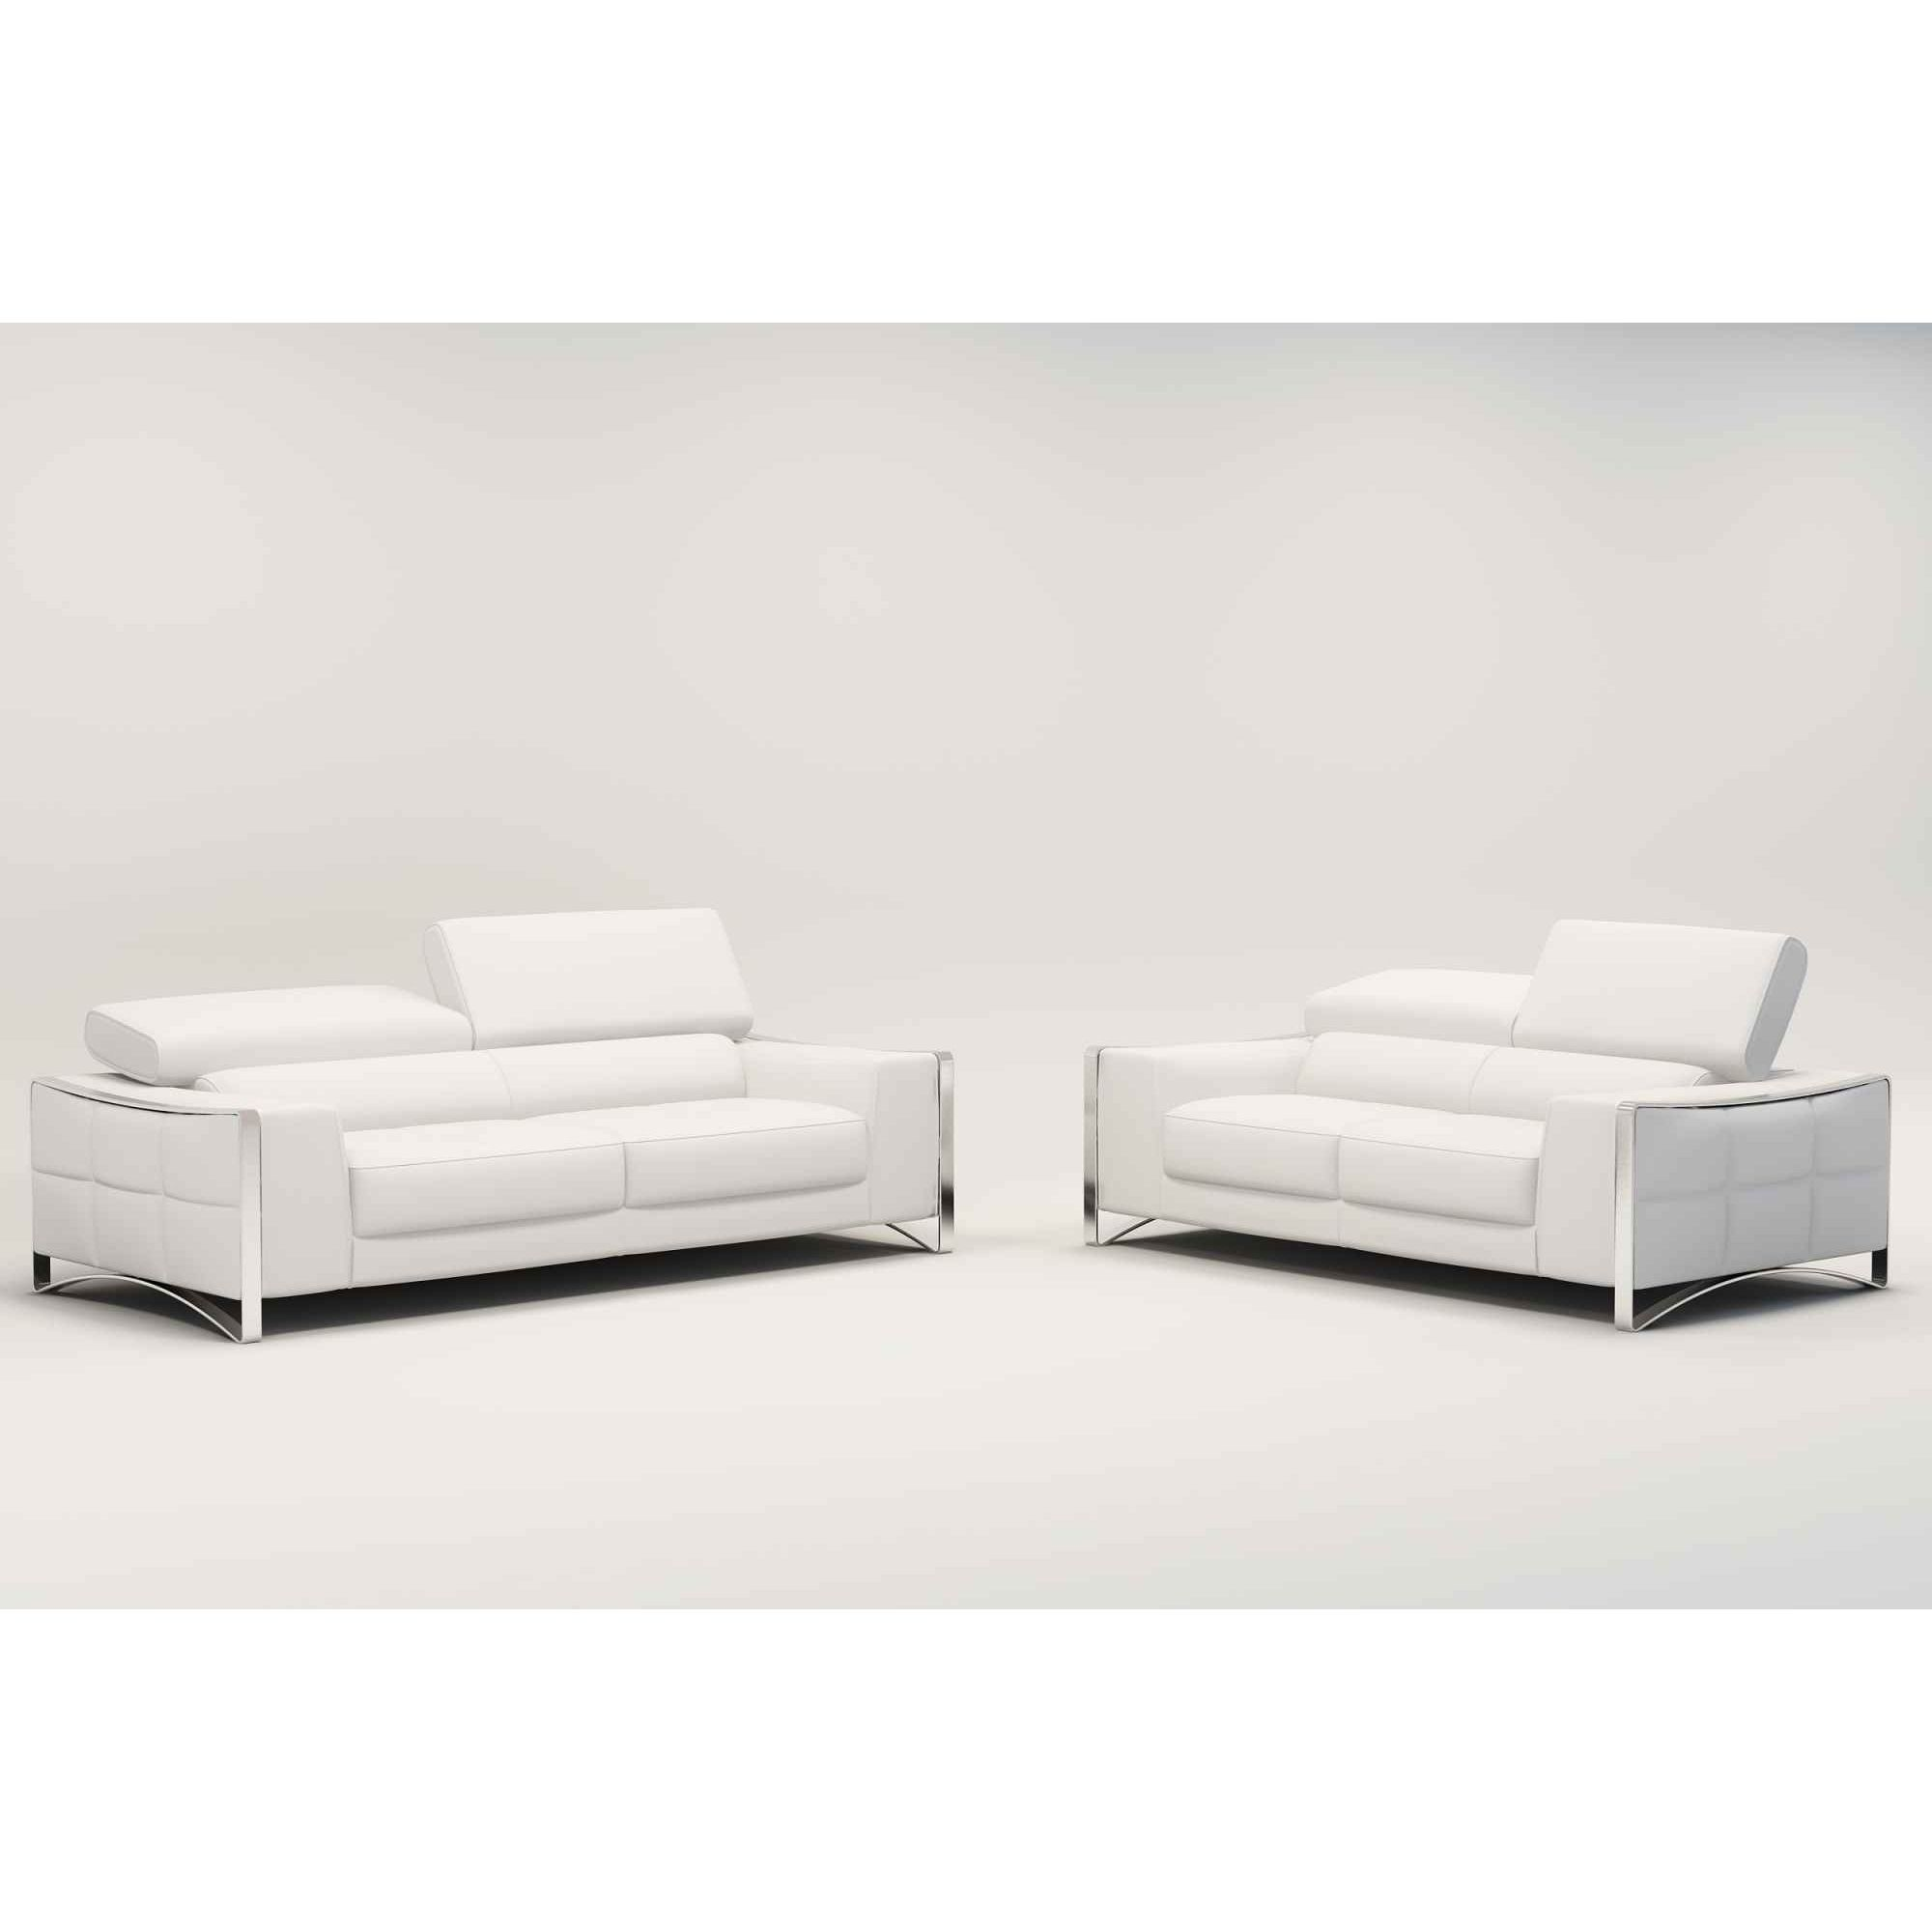 Deco in paris 2 ensemble canape cuir 3 2 places blanc sheyla sheyla blanc c - Canape 2 places blanc ...